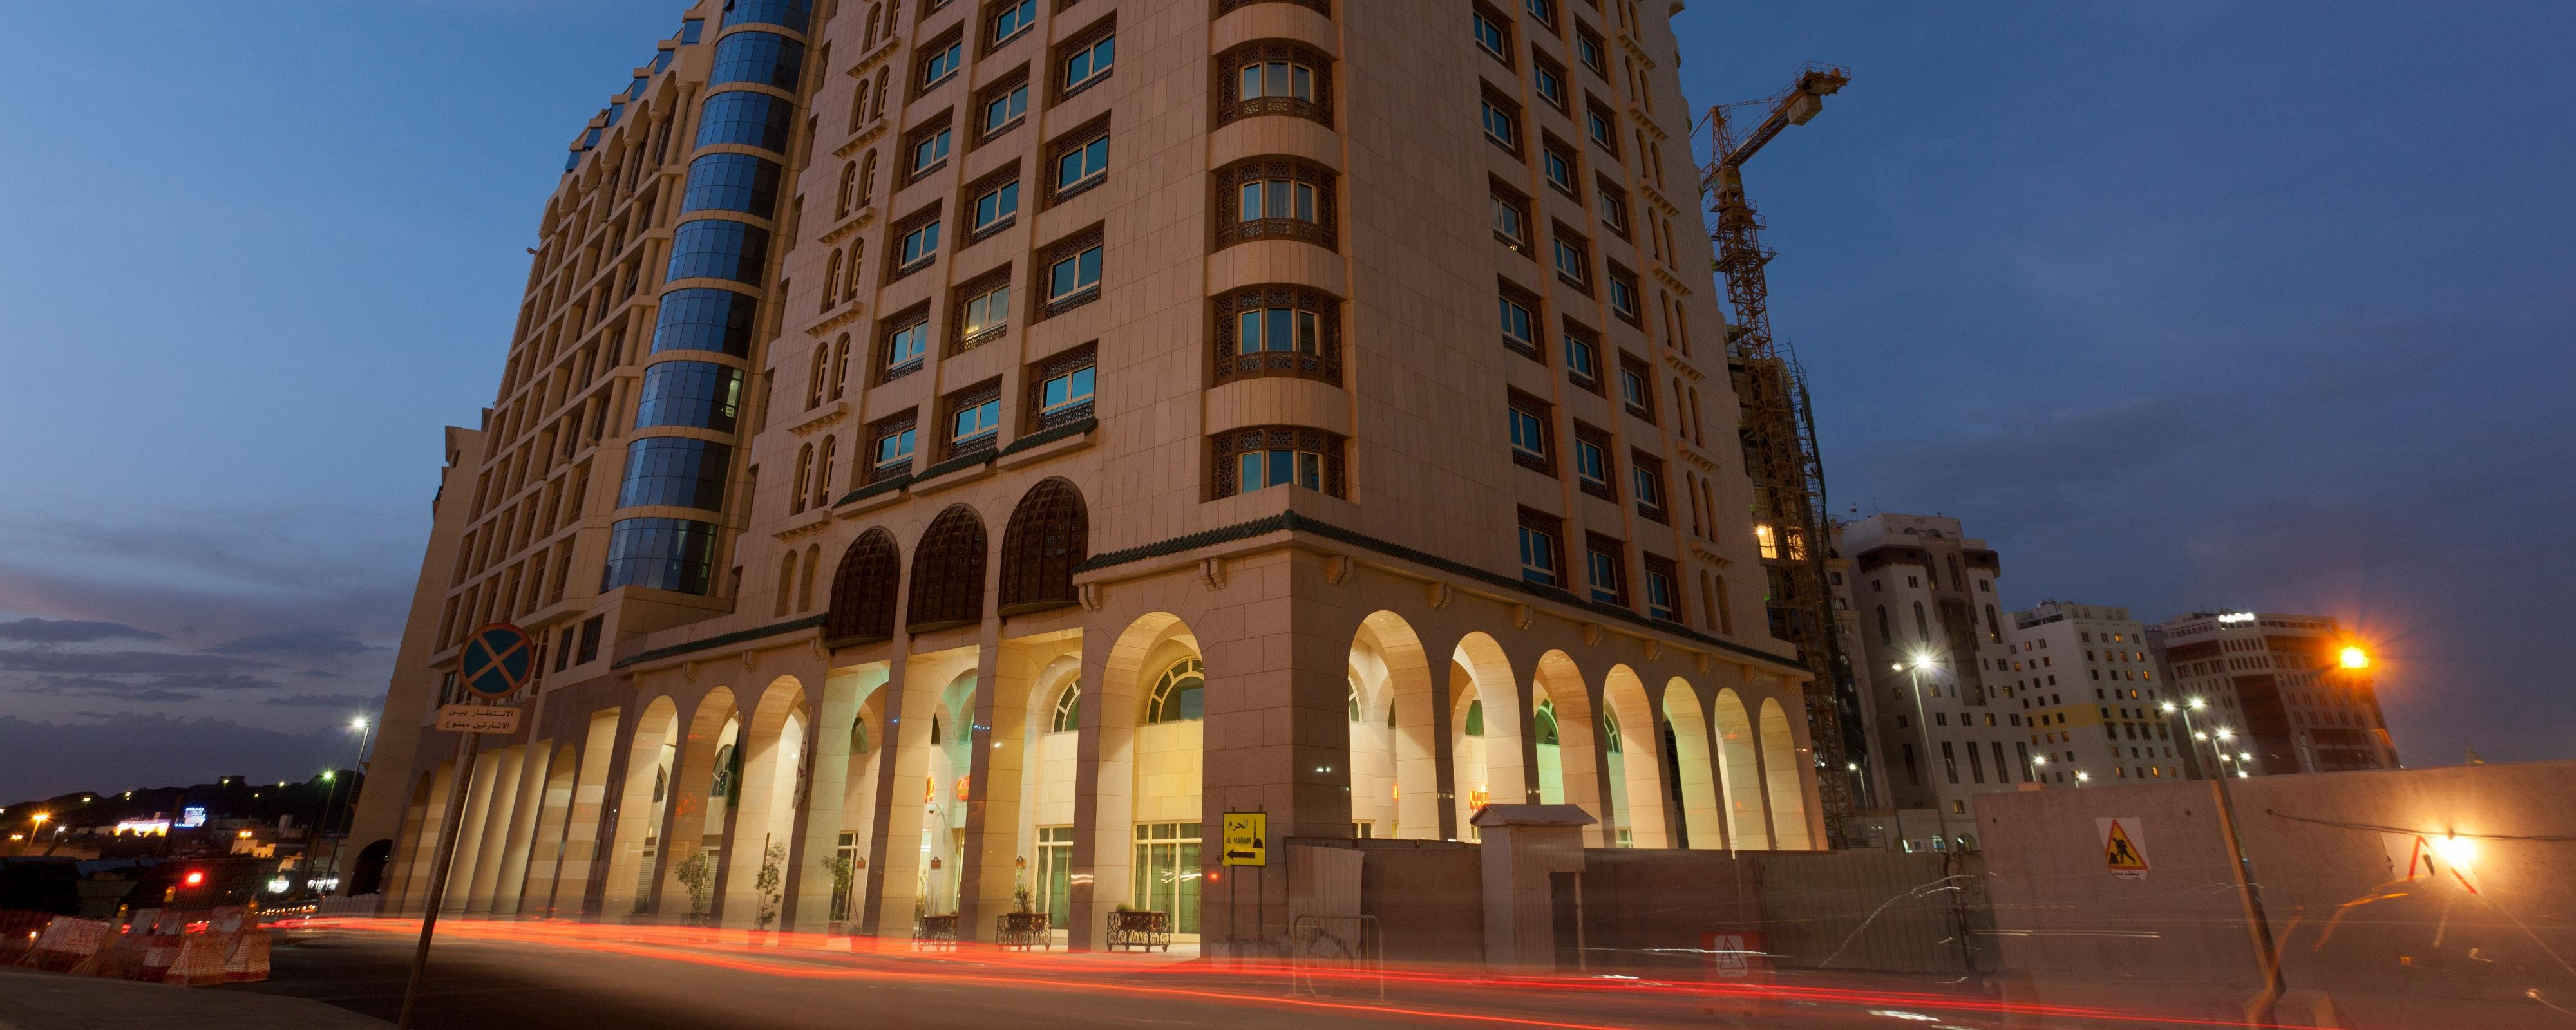 Hotels In Madinah Madinah Marriott Hotel Madinah Hotels